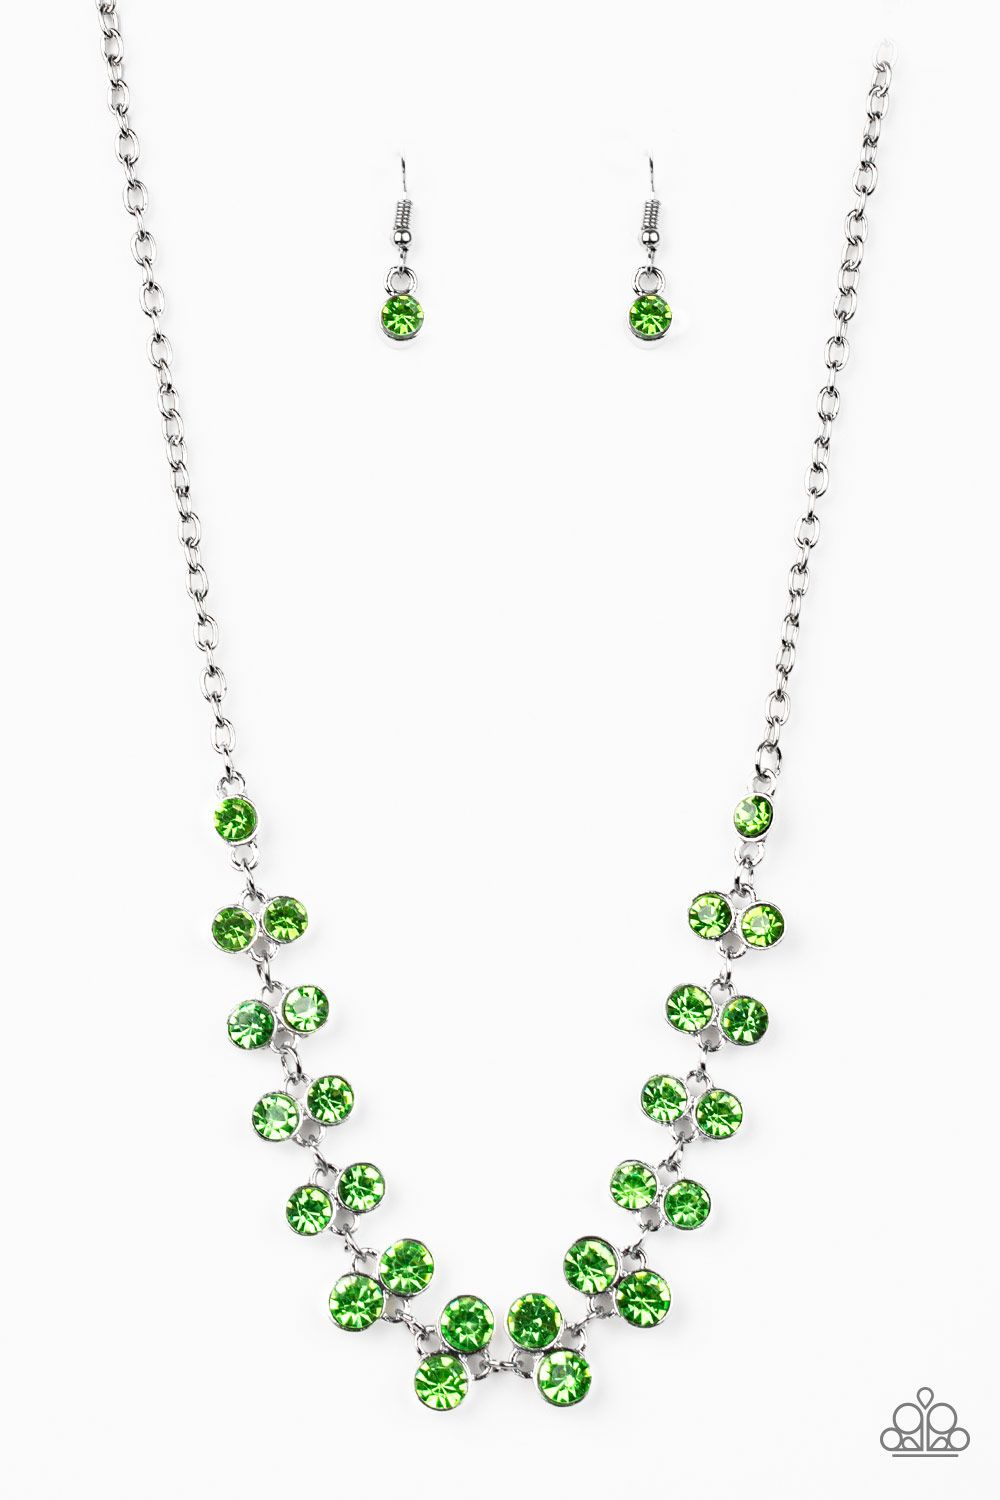 PAPARAZZI SUPER STARSTRUCK GREEN RHINESTONE BELOW THE COLOR NECKLACE EARRING